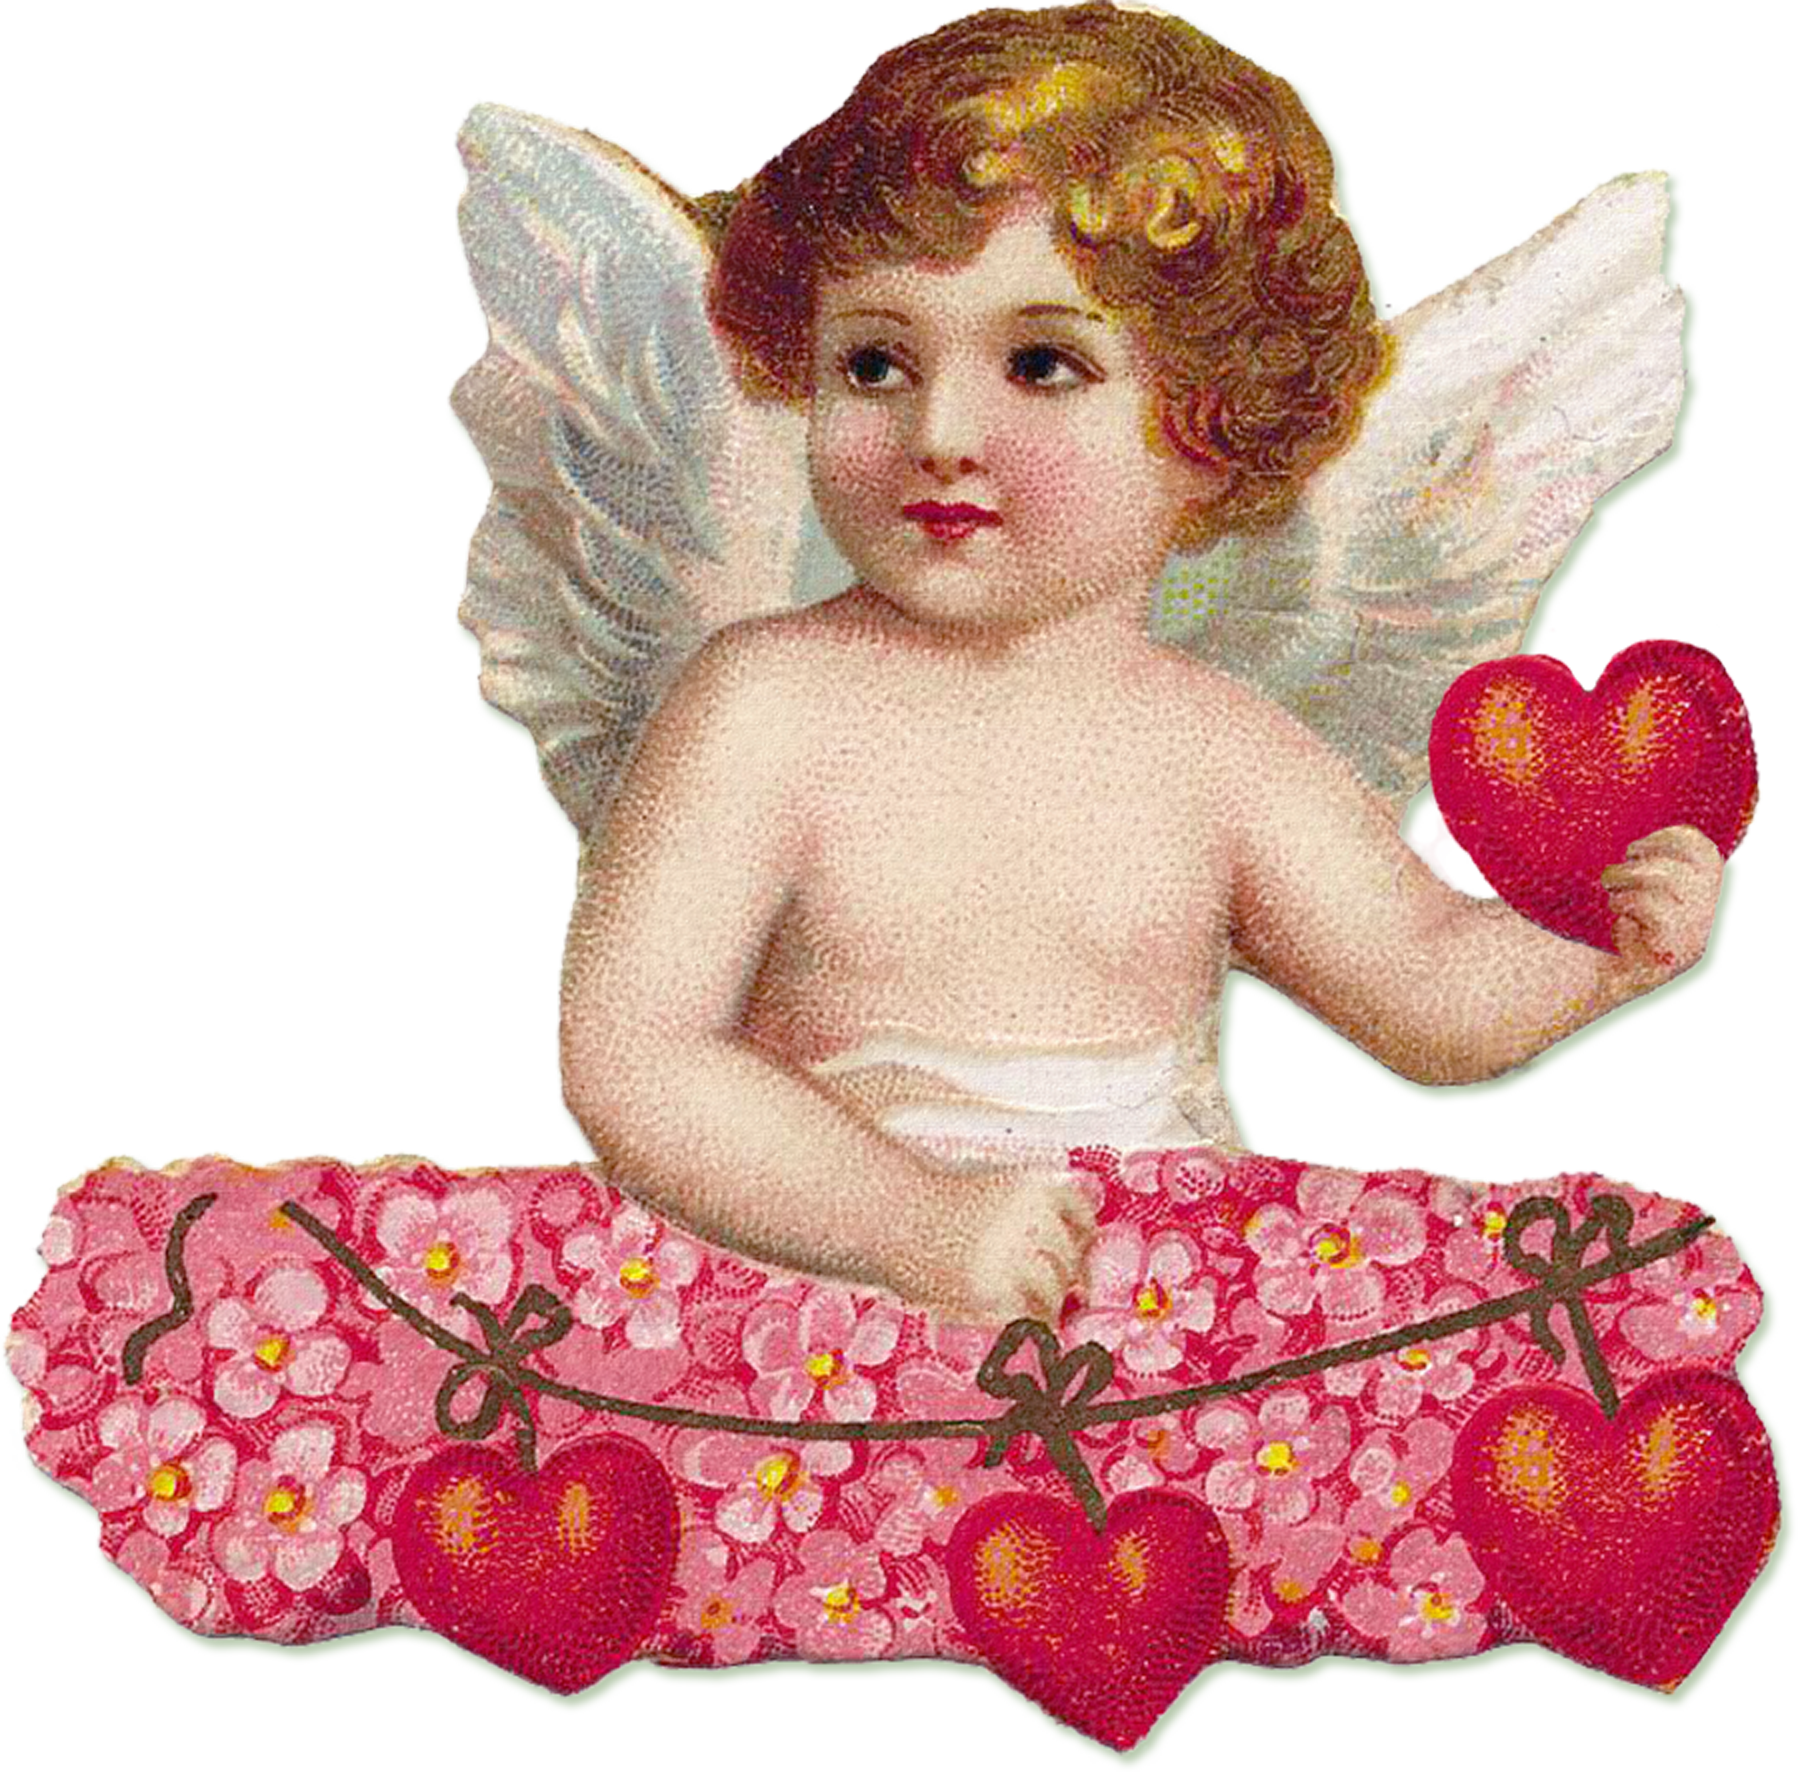 Cherub images clipart images gallery for download MyReal 1798x1772